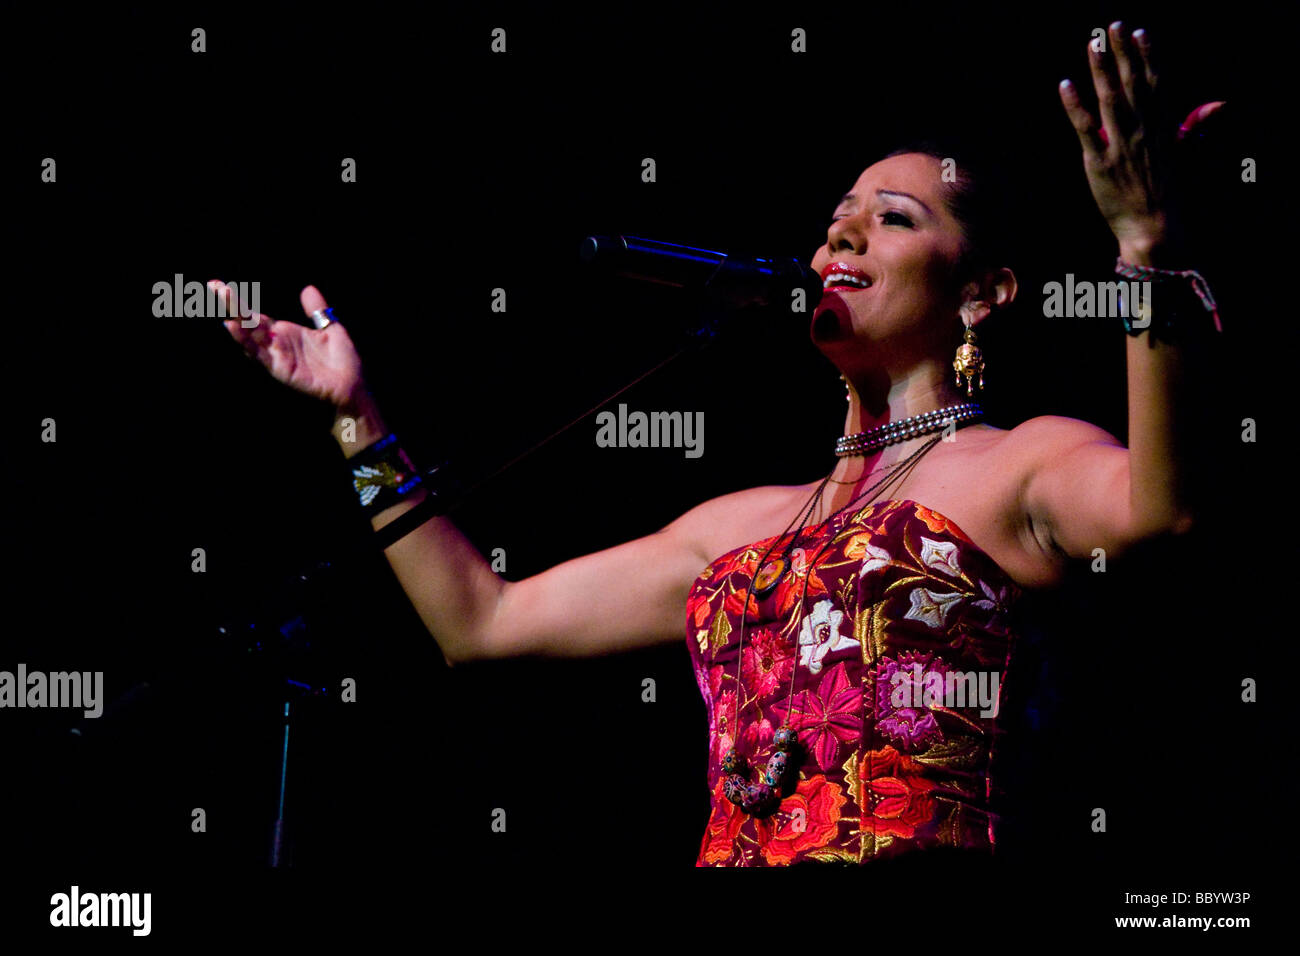 The Mexican singer Lila Downs live in the concert hall of the KKL Lucerne, Switzerland - Stock Image